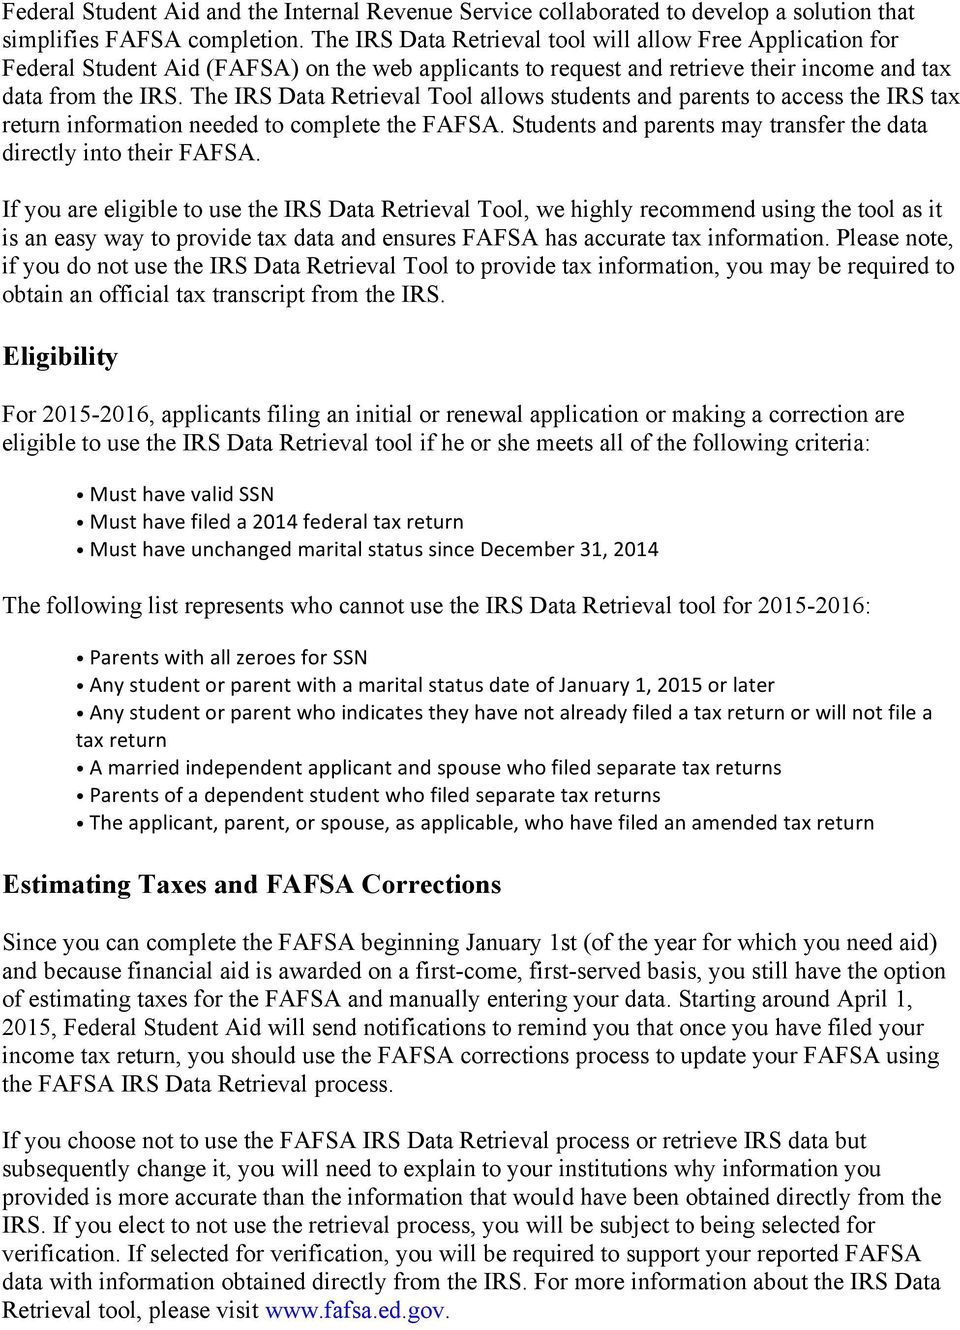 The IRS Data Retrieval Tool allows students and parents to access the IRS tax return information needed to complete the FAFSA. Students and parents may transfer the data directly into their FAFSA.